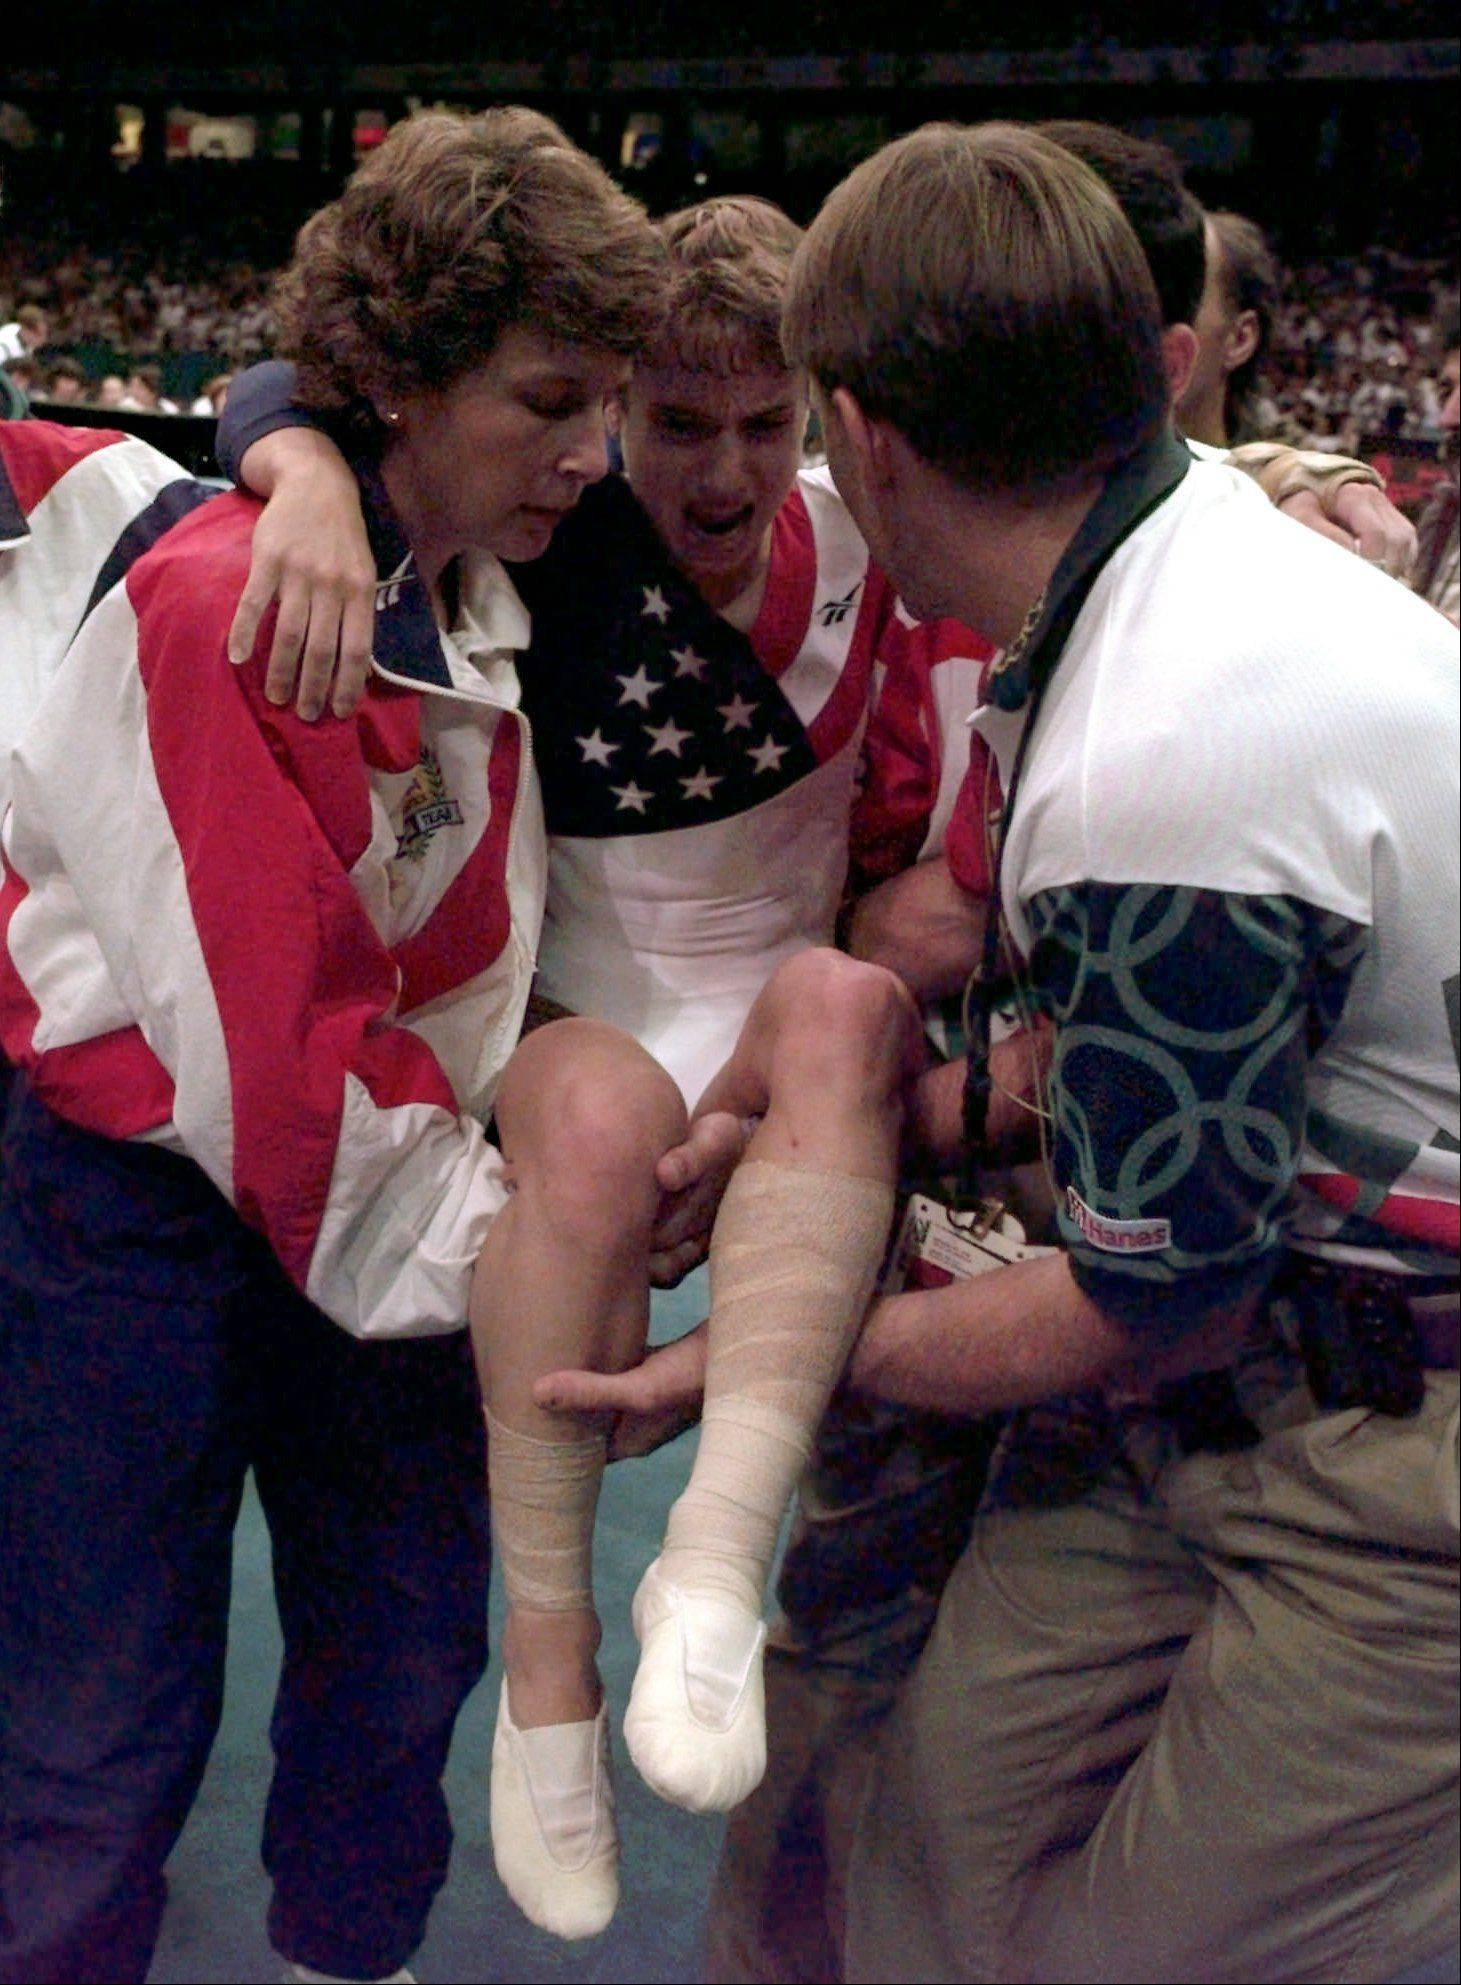 Kerri Strug, of Houston, Texas, grimaces in pain as she is helped after injuring her left leg following her landing in the vault competition at the women's team gymnastics finals at the Centennial Summer Olympic Games in Atlanta on Tuesday, July 23, 1996.